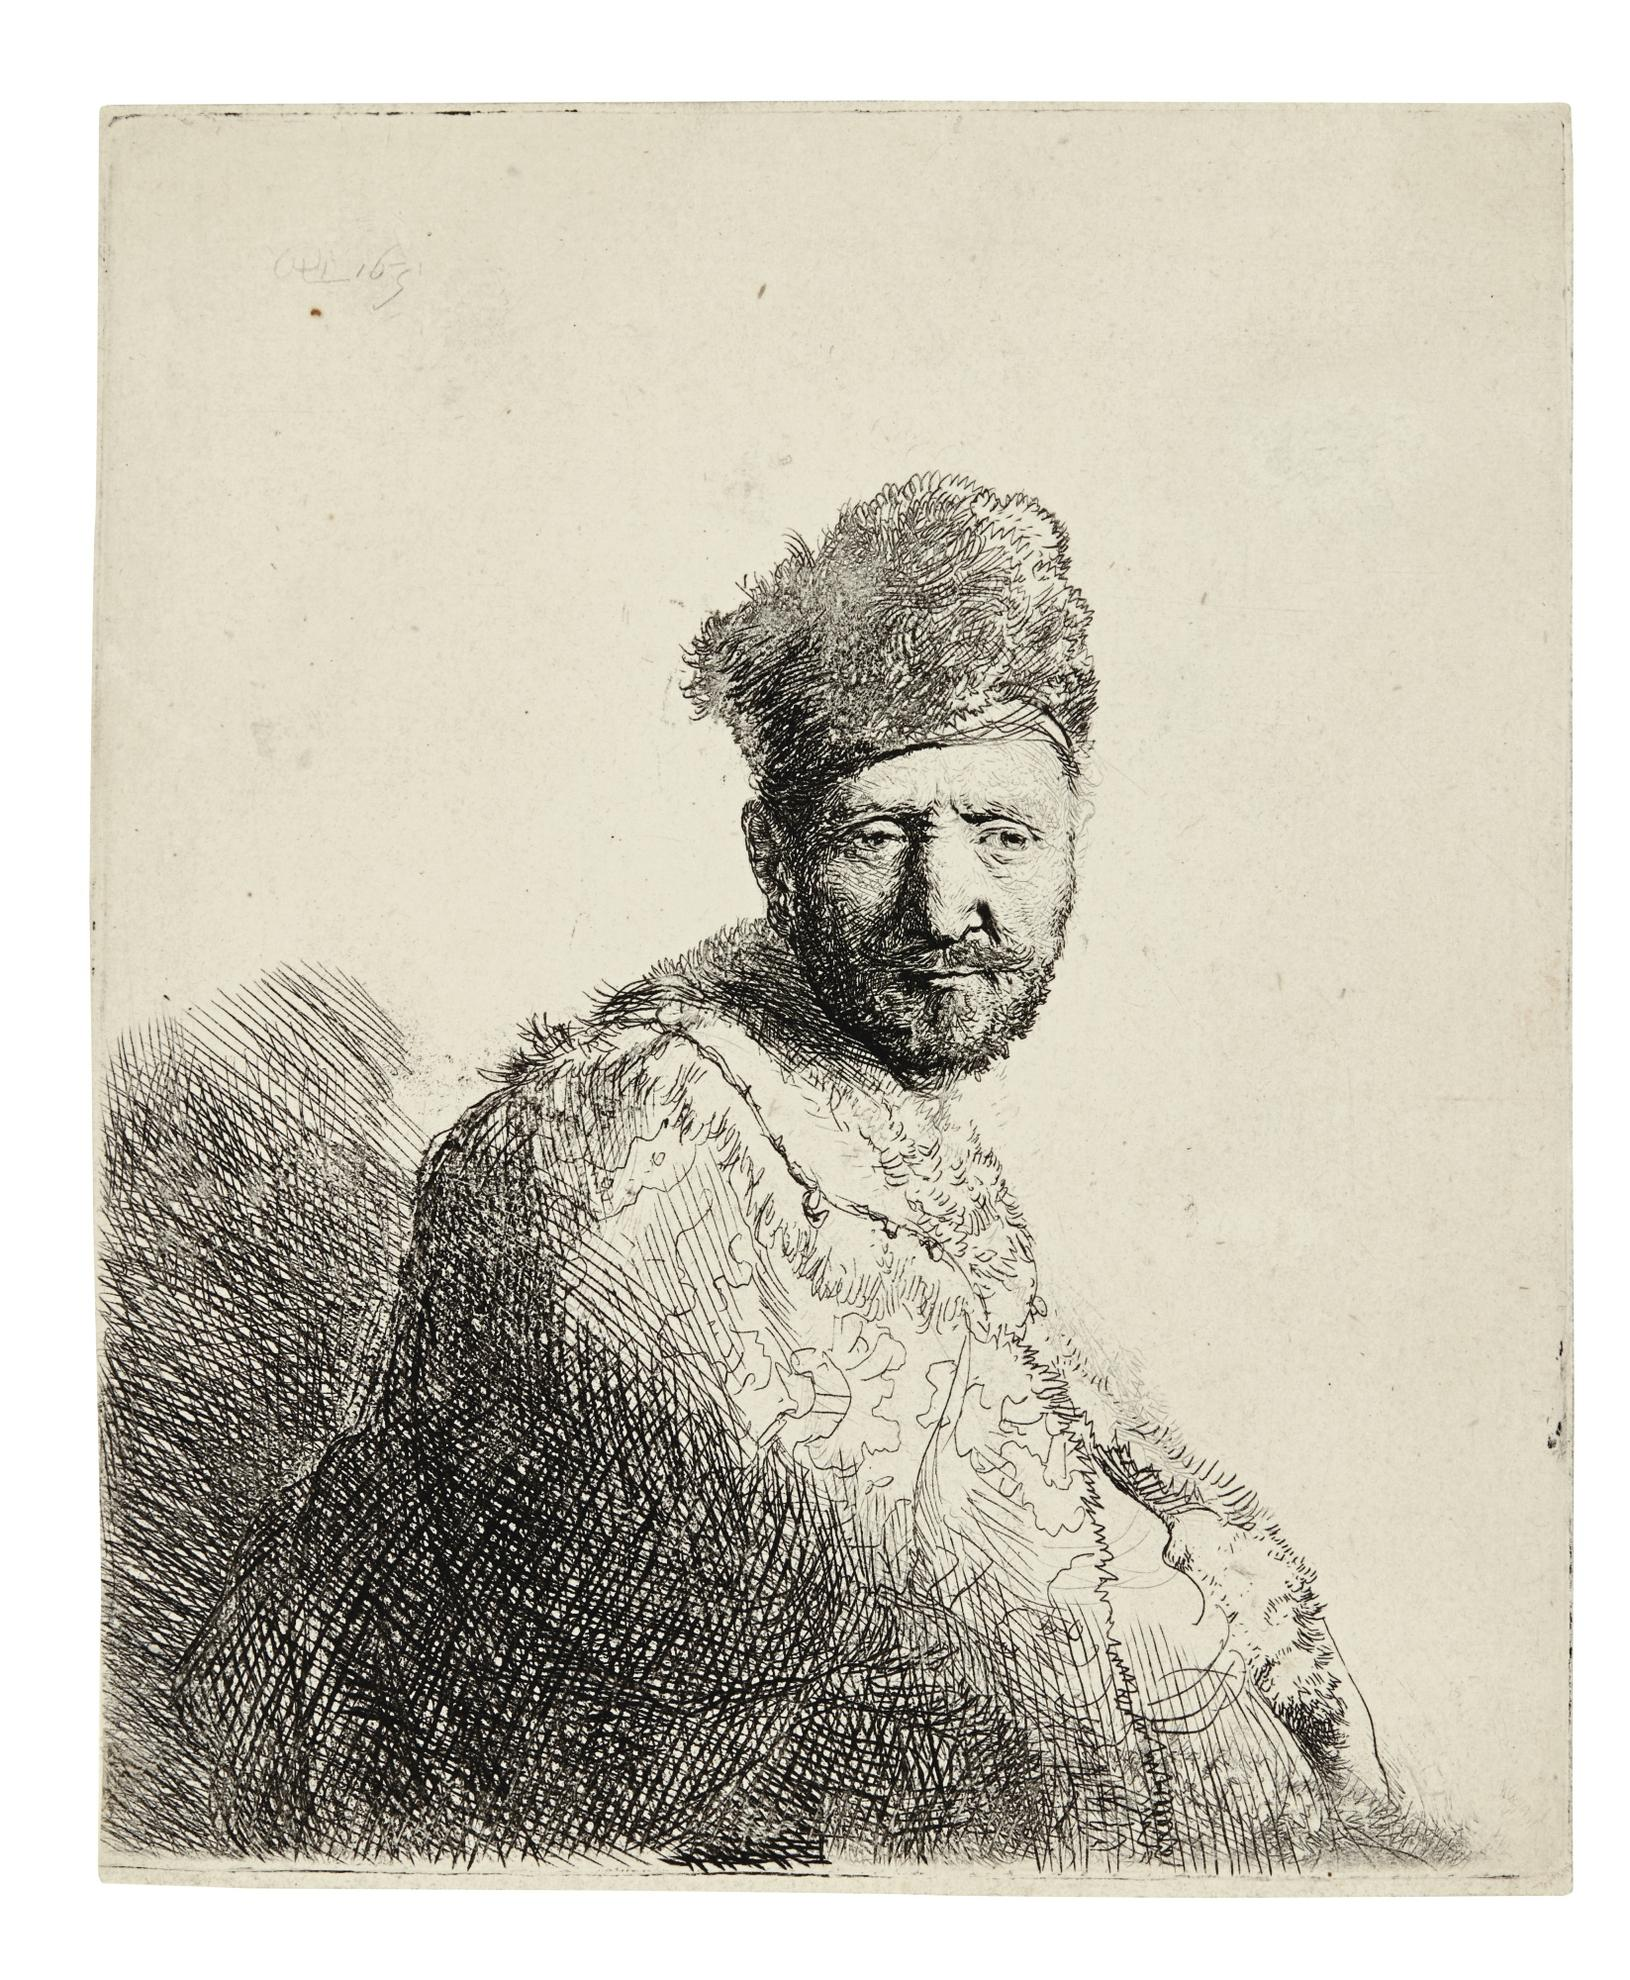 Rembrandt van Rijn-Bearded Man, In A Furred Oriental Cap And Robe (B., Holl. 263; New Holl. 85; H. 53)-1631